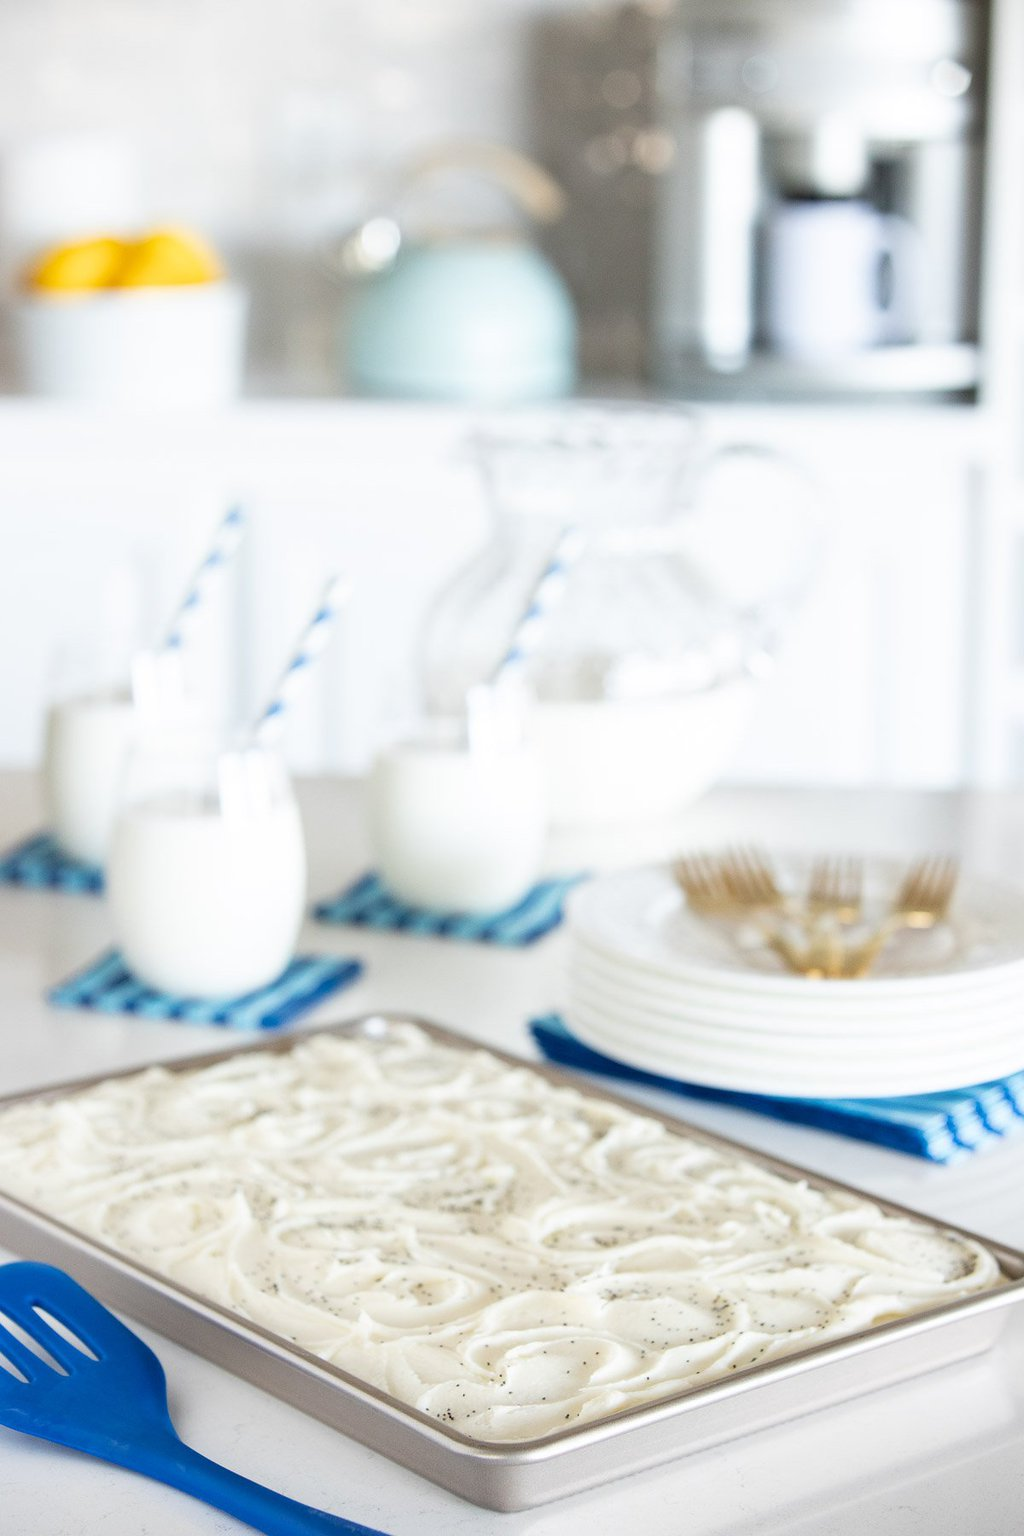 Vertical photo of a Ridiculously Easy Lemon Poppy Seed Sheet Cake on a kitchen countertop with glasses and a pitcher of milk in the background.